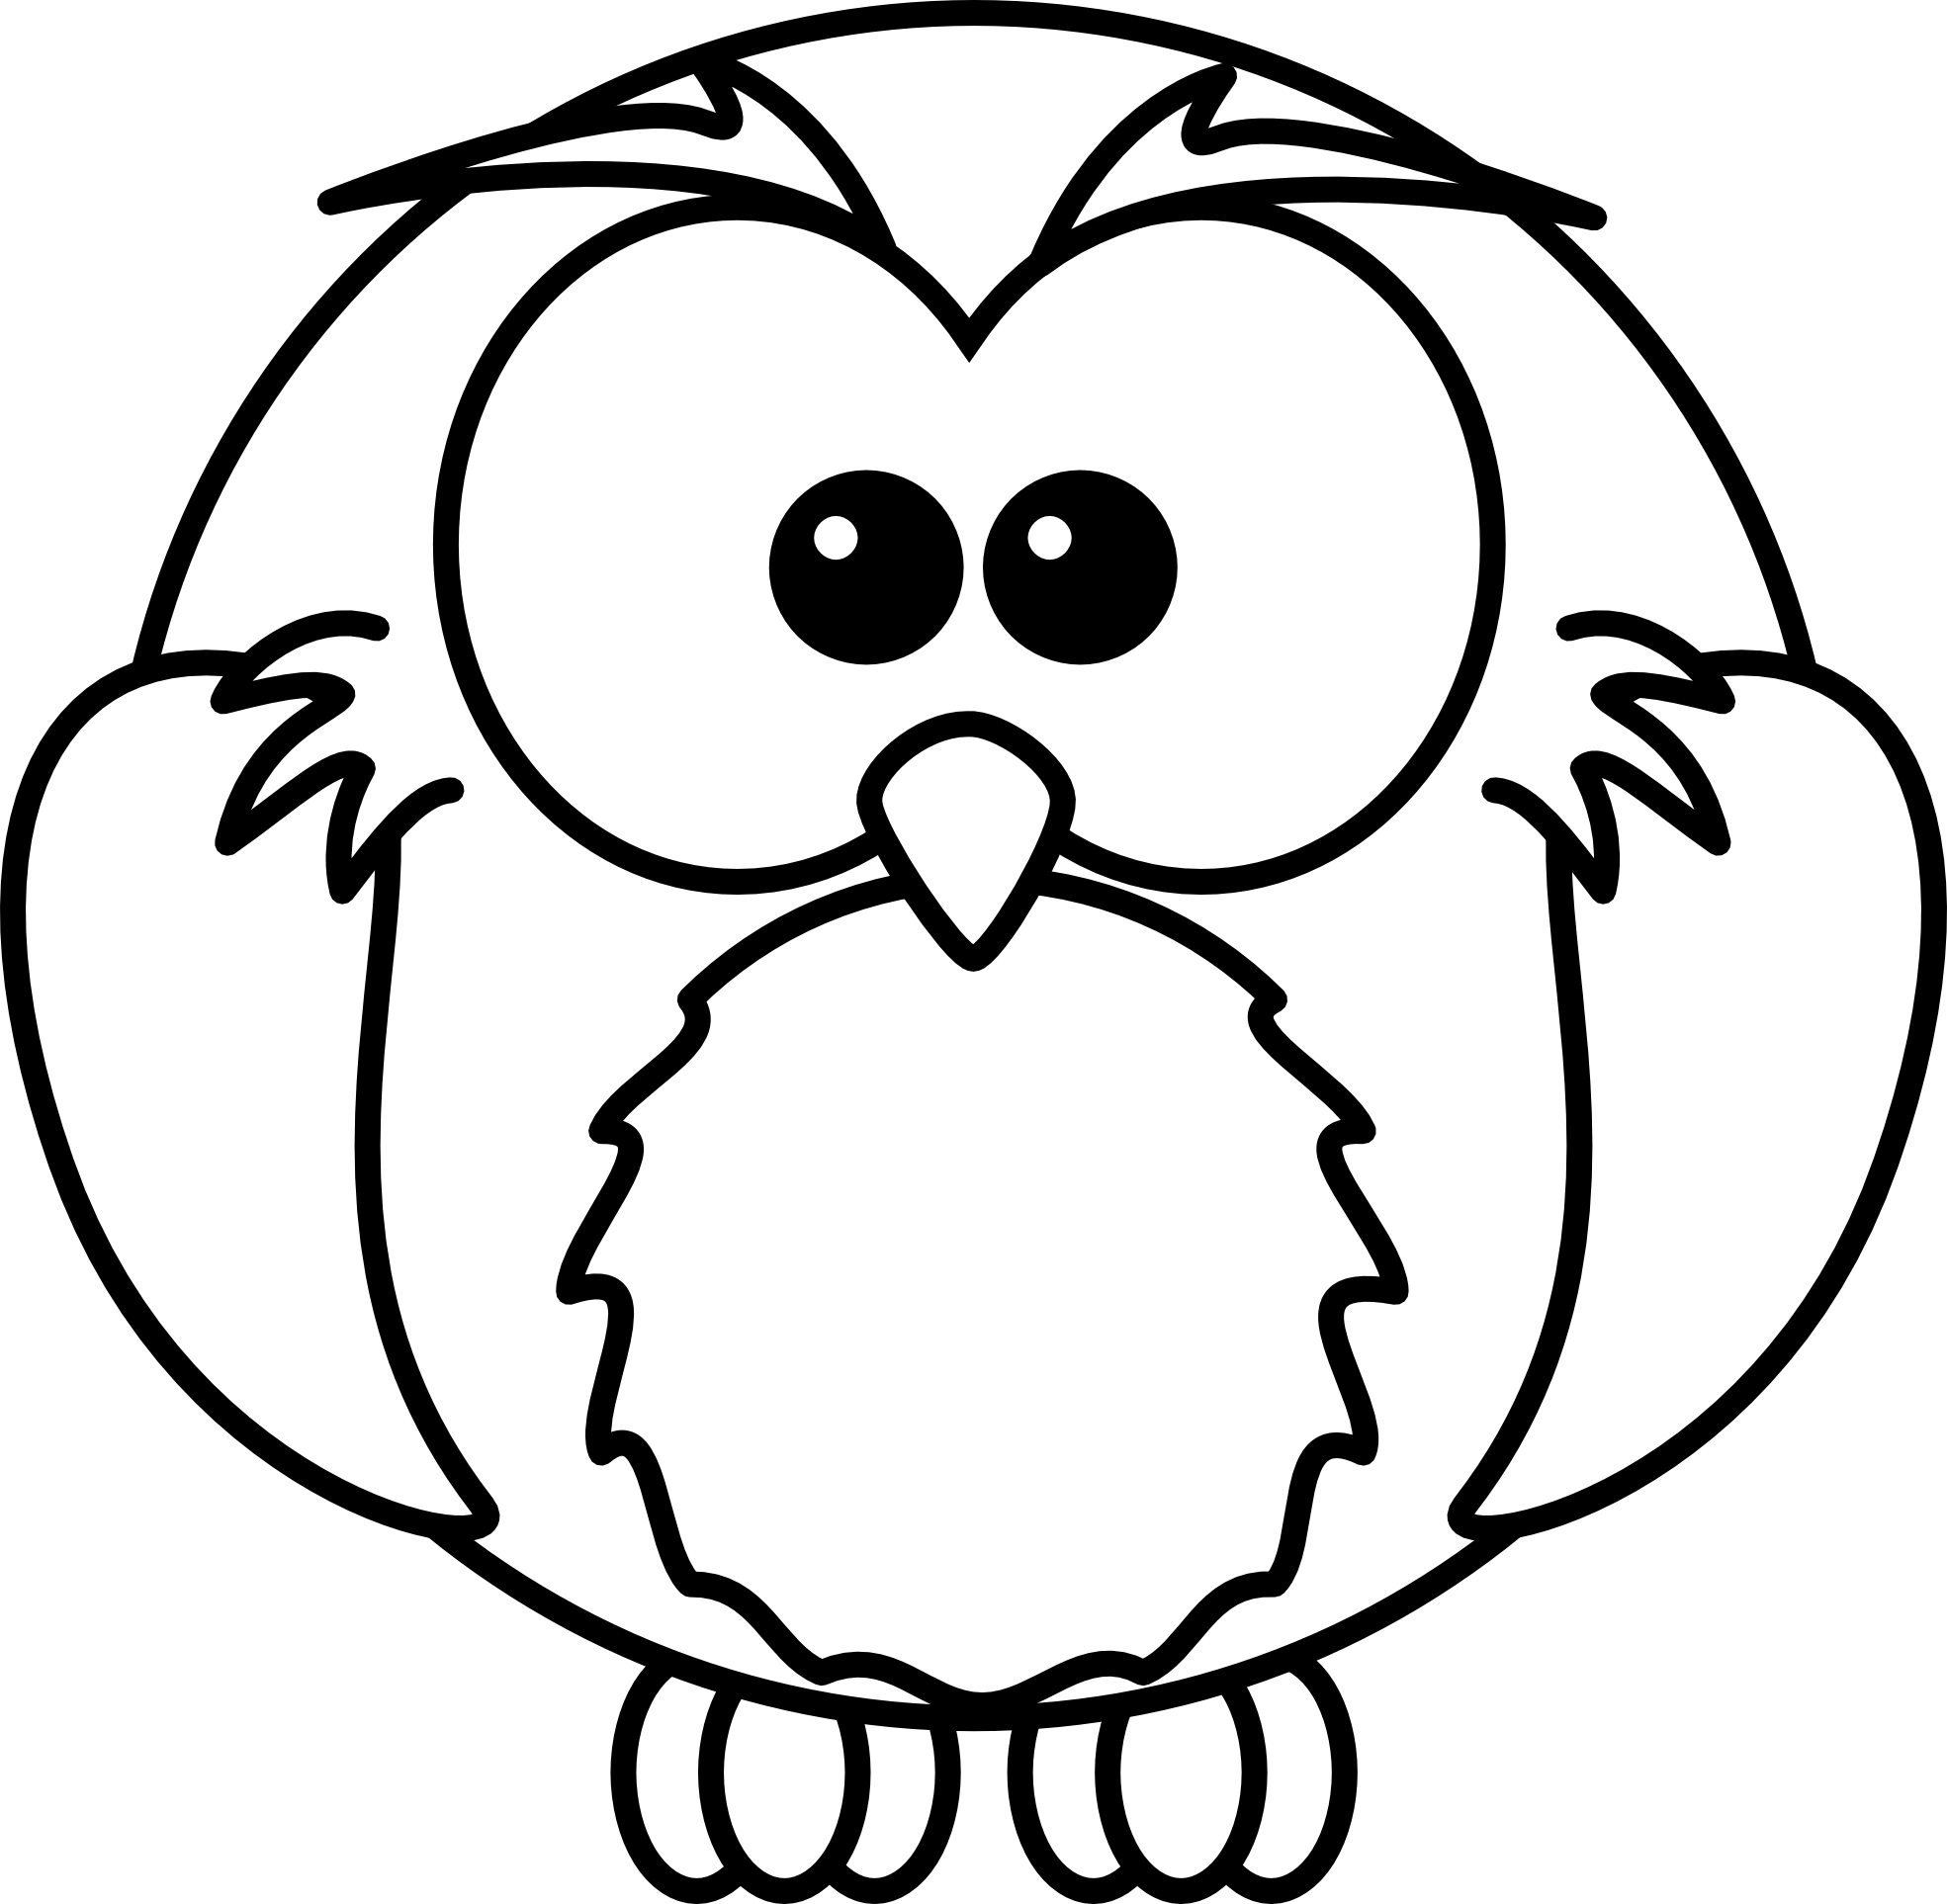 Baby Owl Clipart Black And Wh - Black And White Owl Clip Art